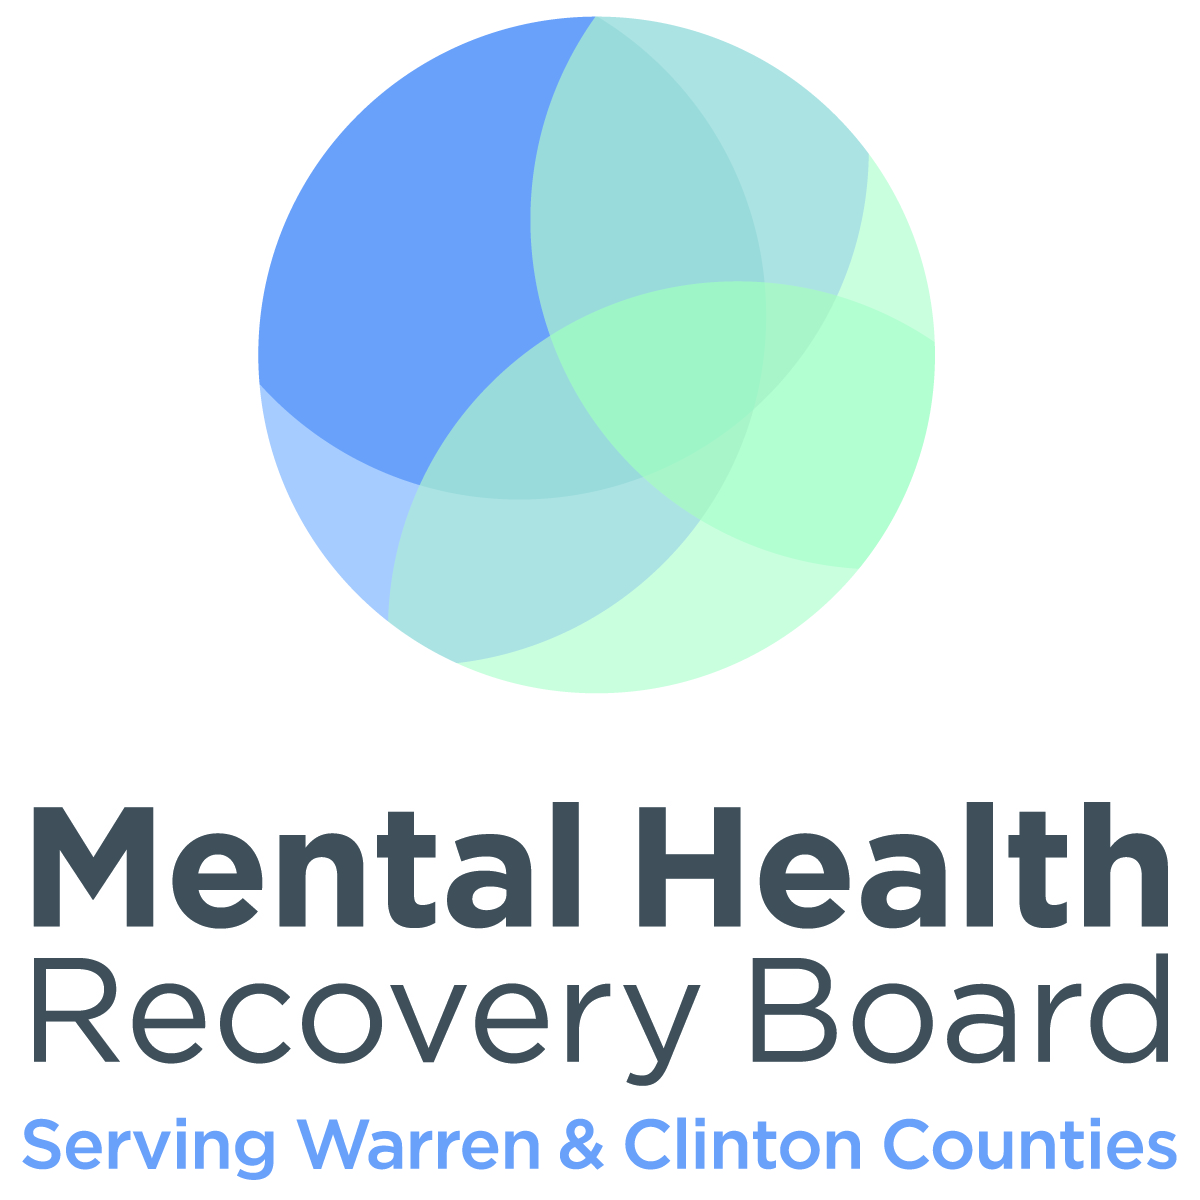 Mental Health Recovery Board